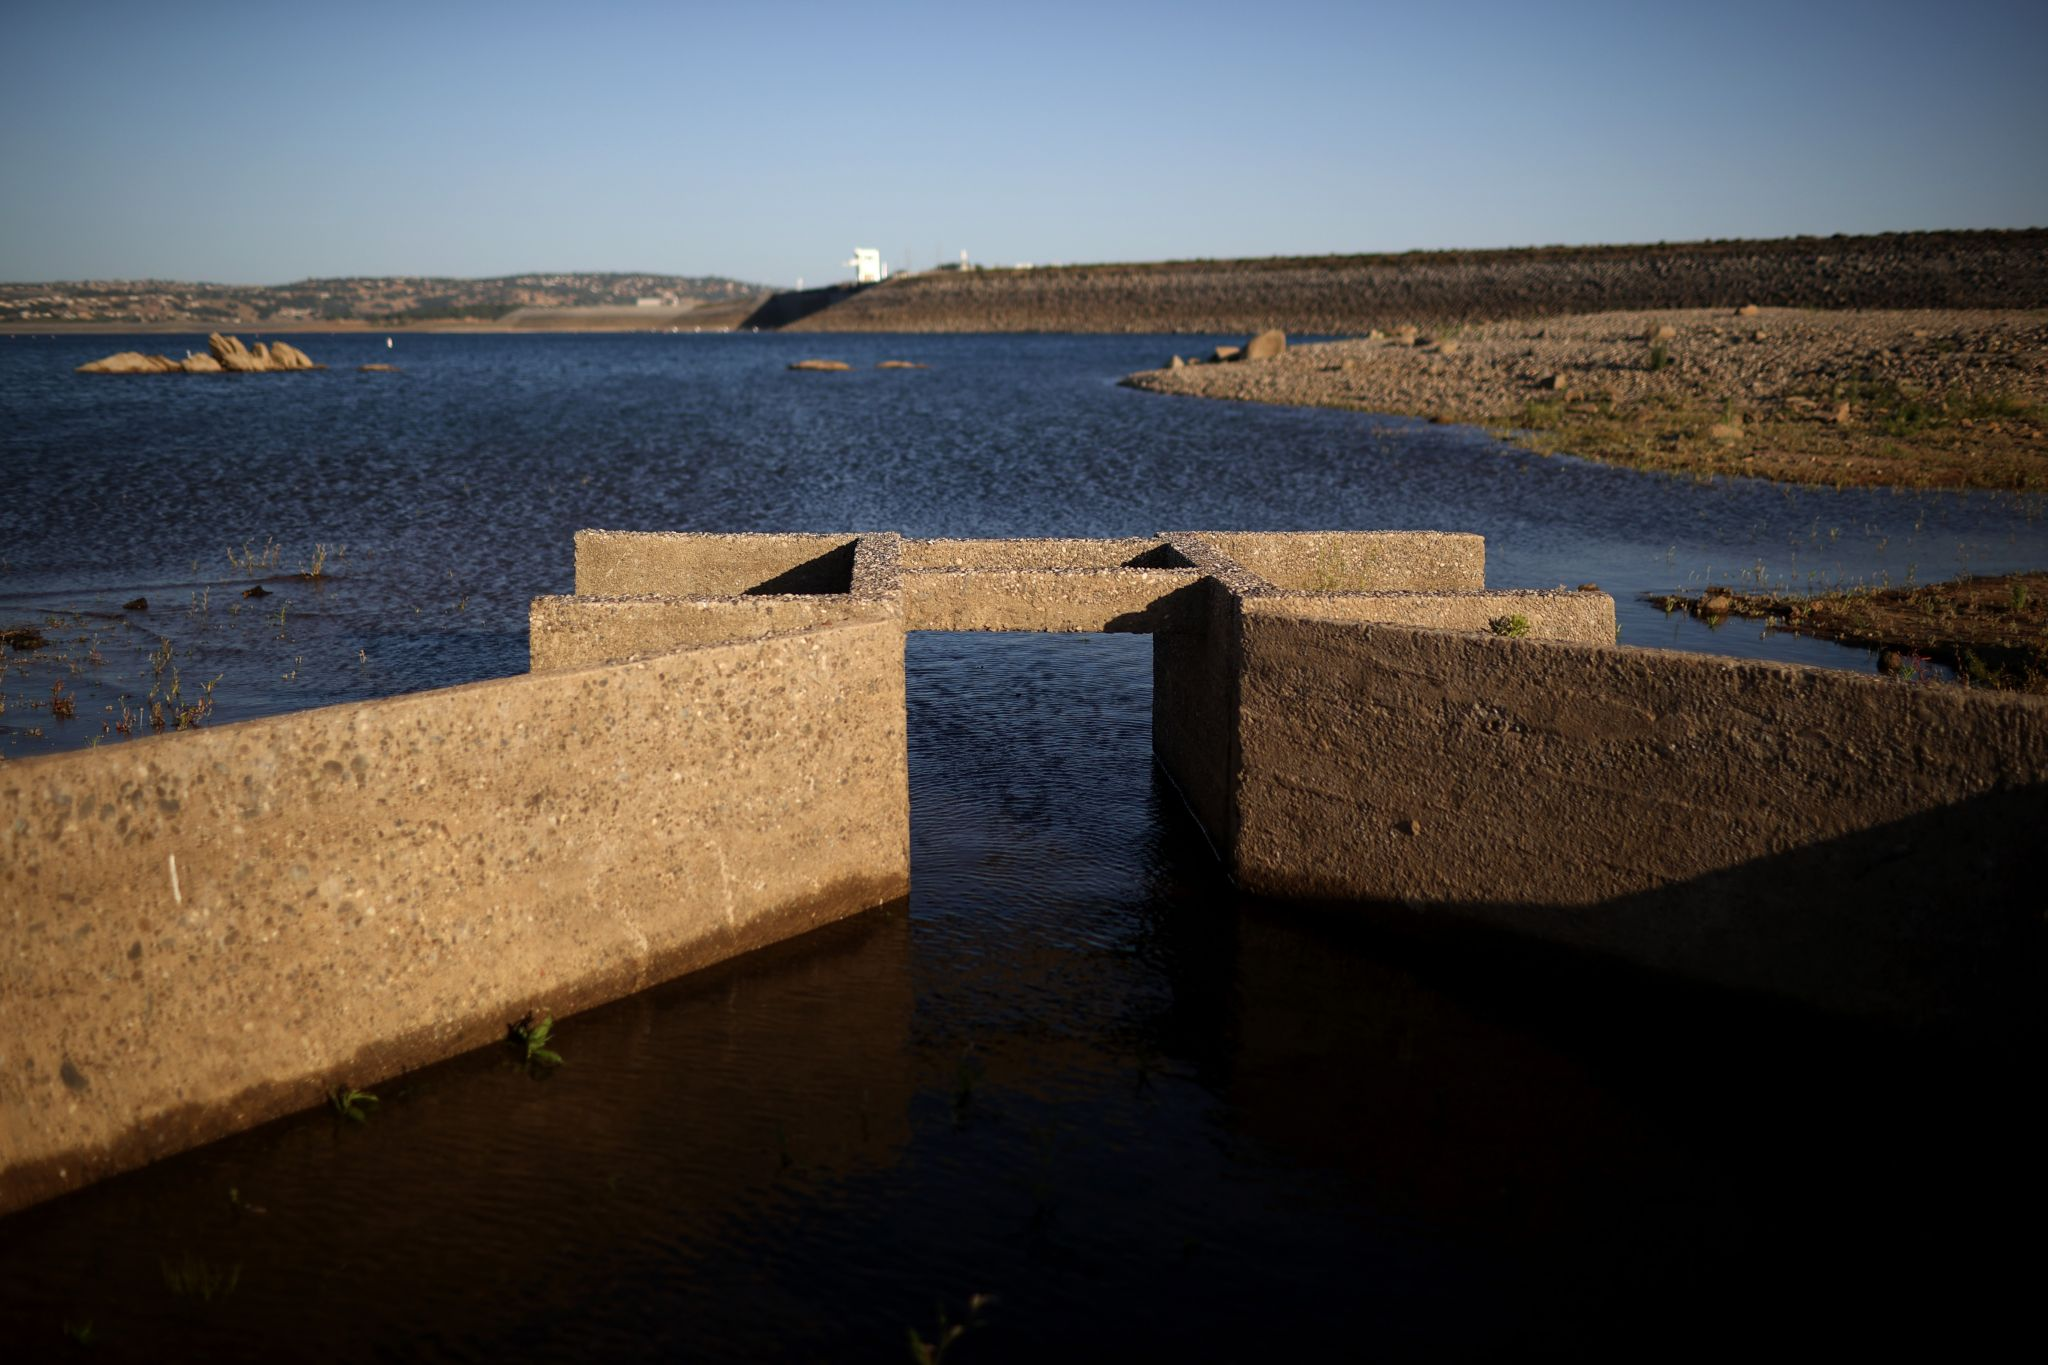 As drought shrinks California lake, a mystery from '60s emerges